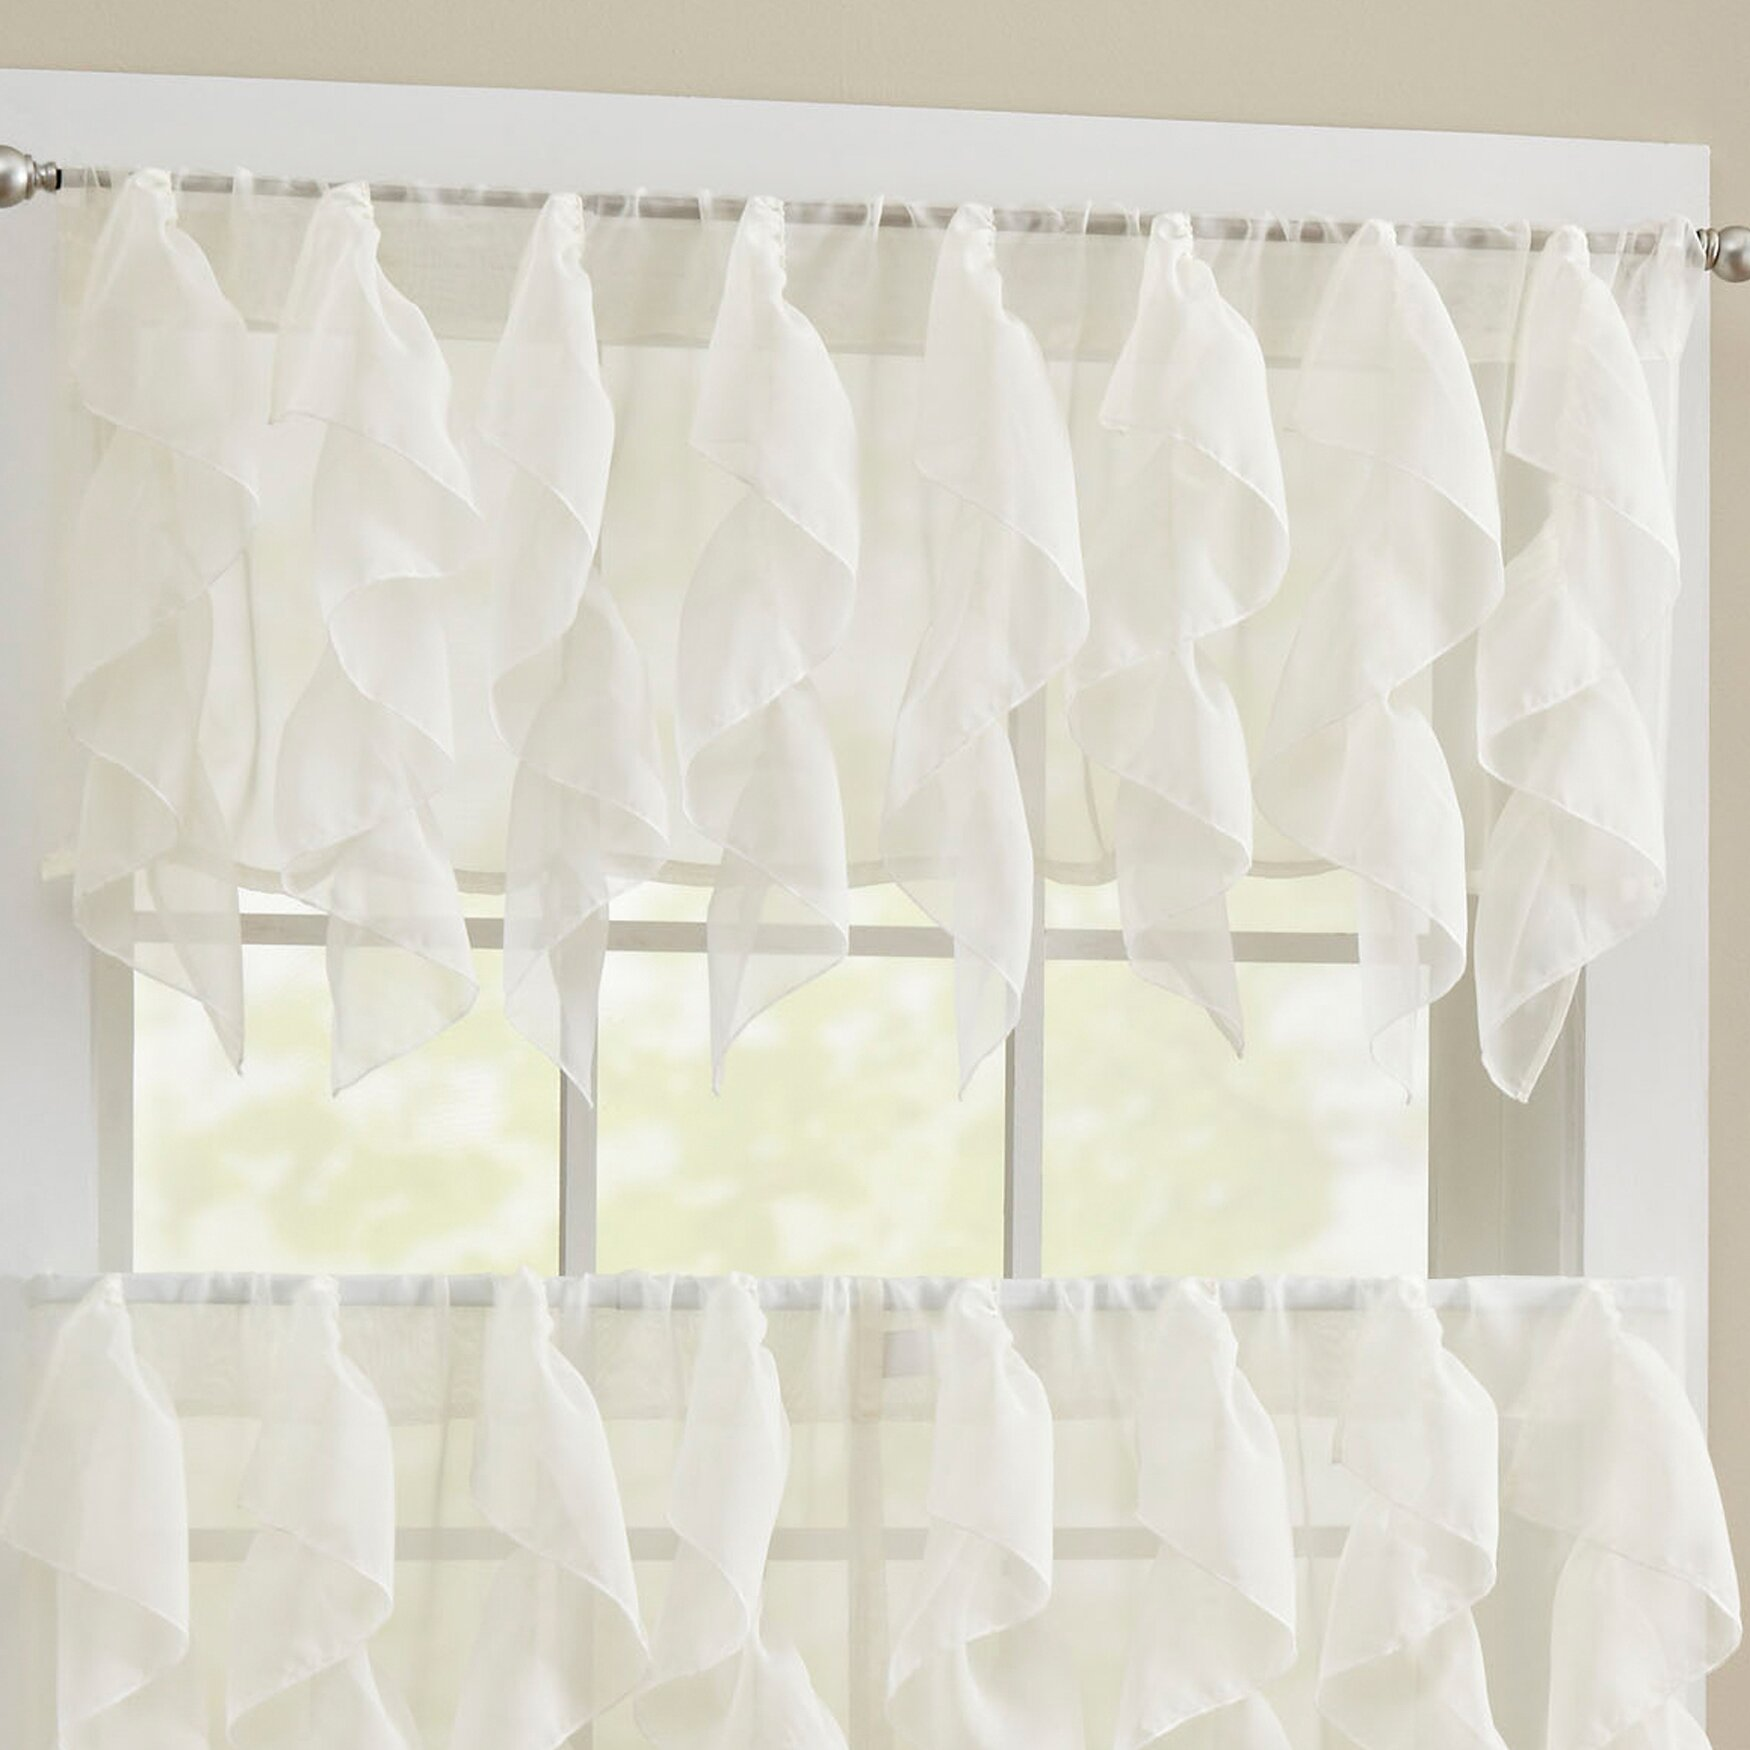 Crochet shower curtains - Crochet Lace Curtain